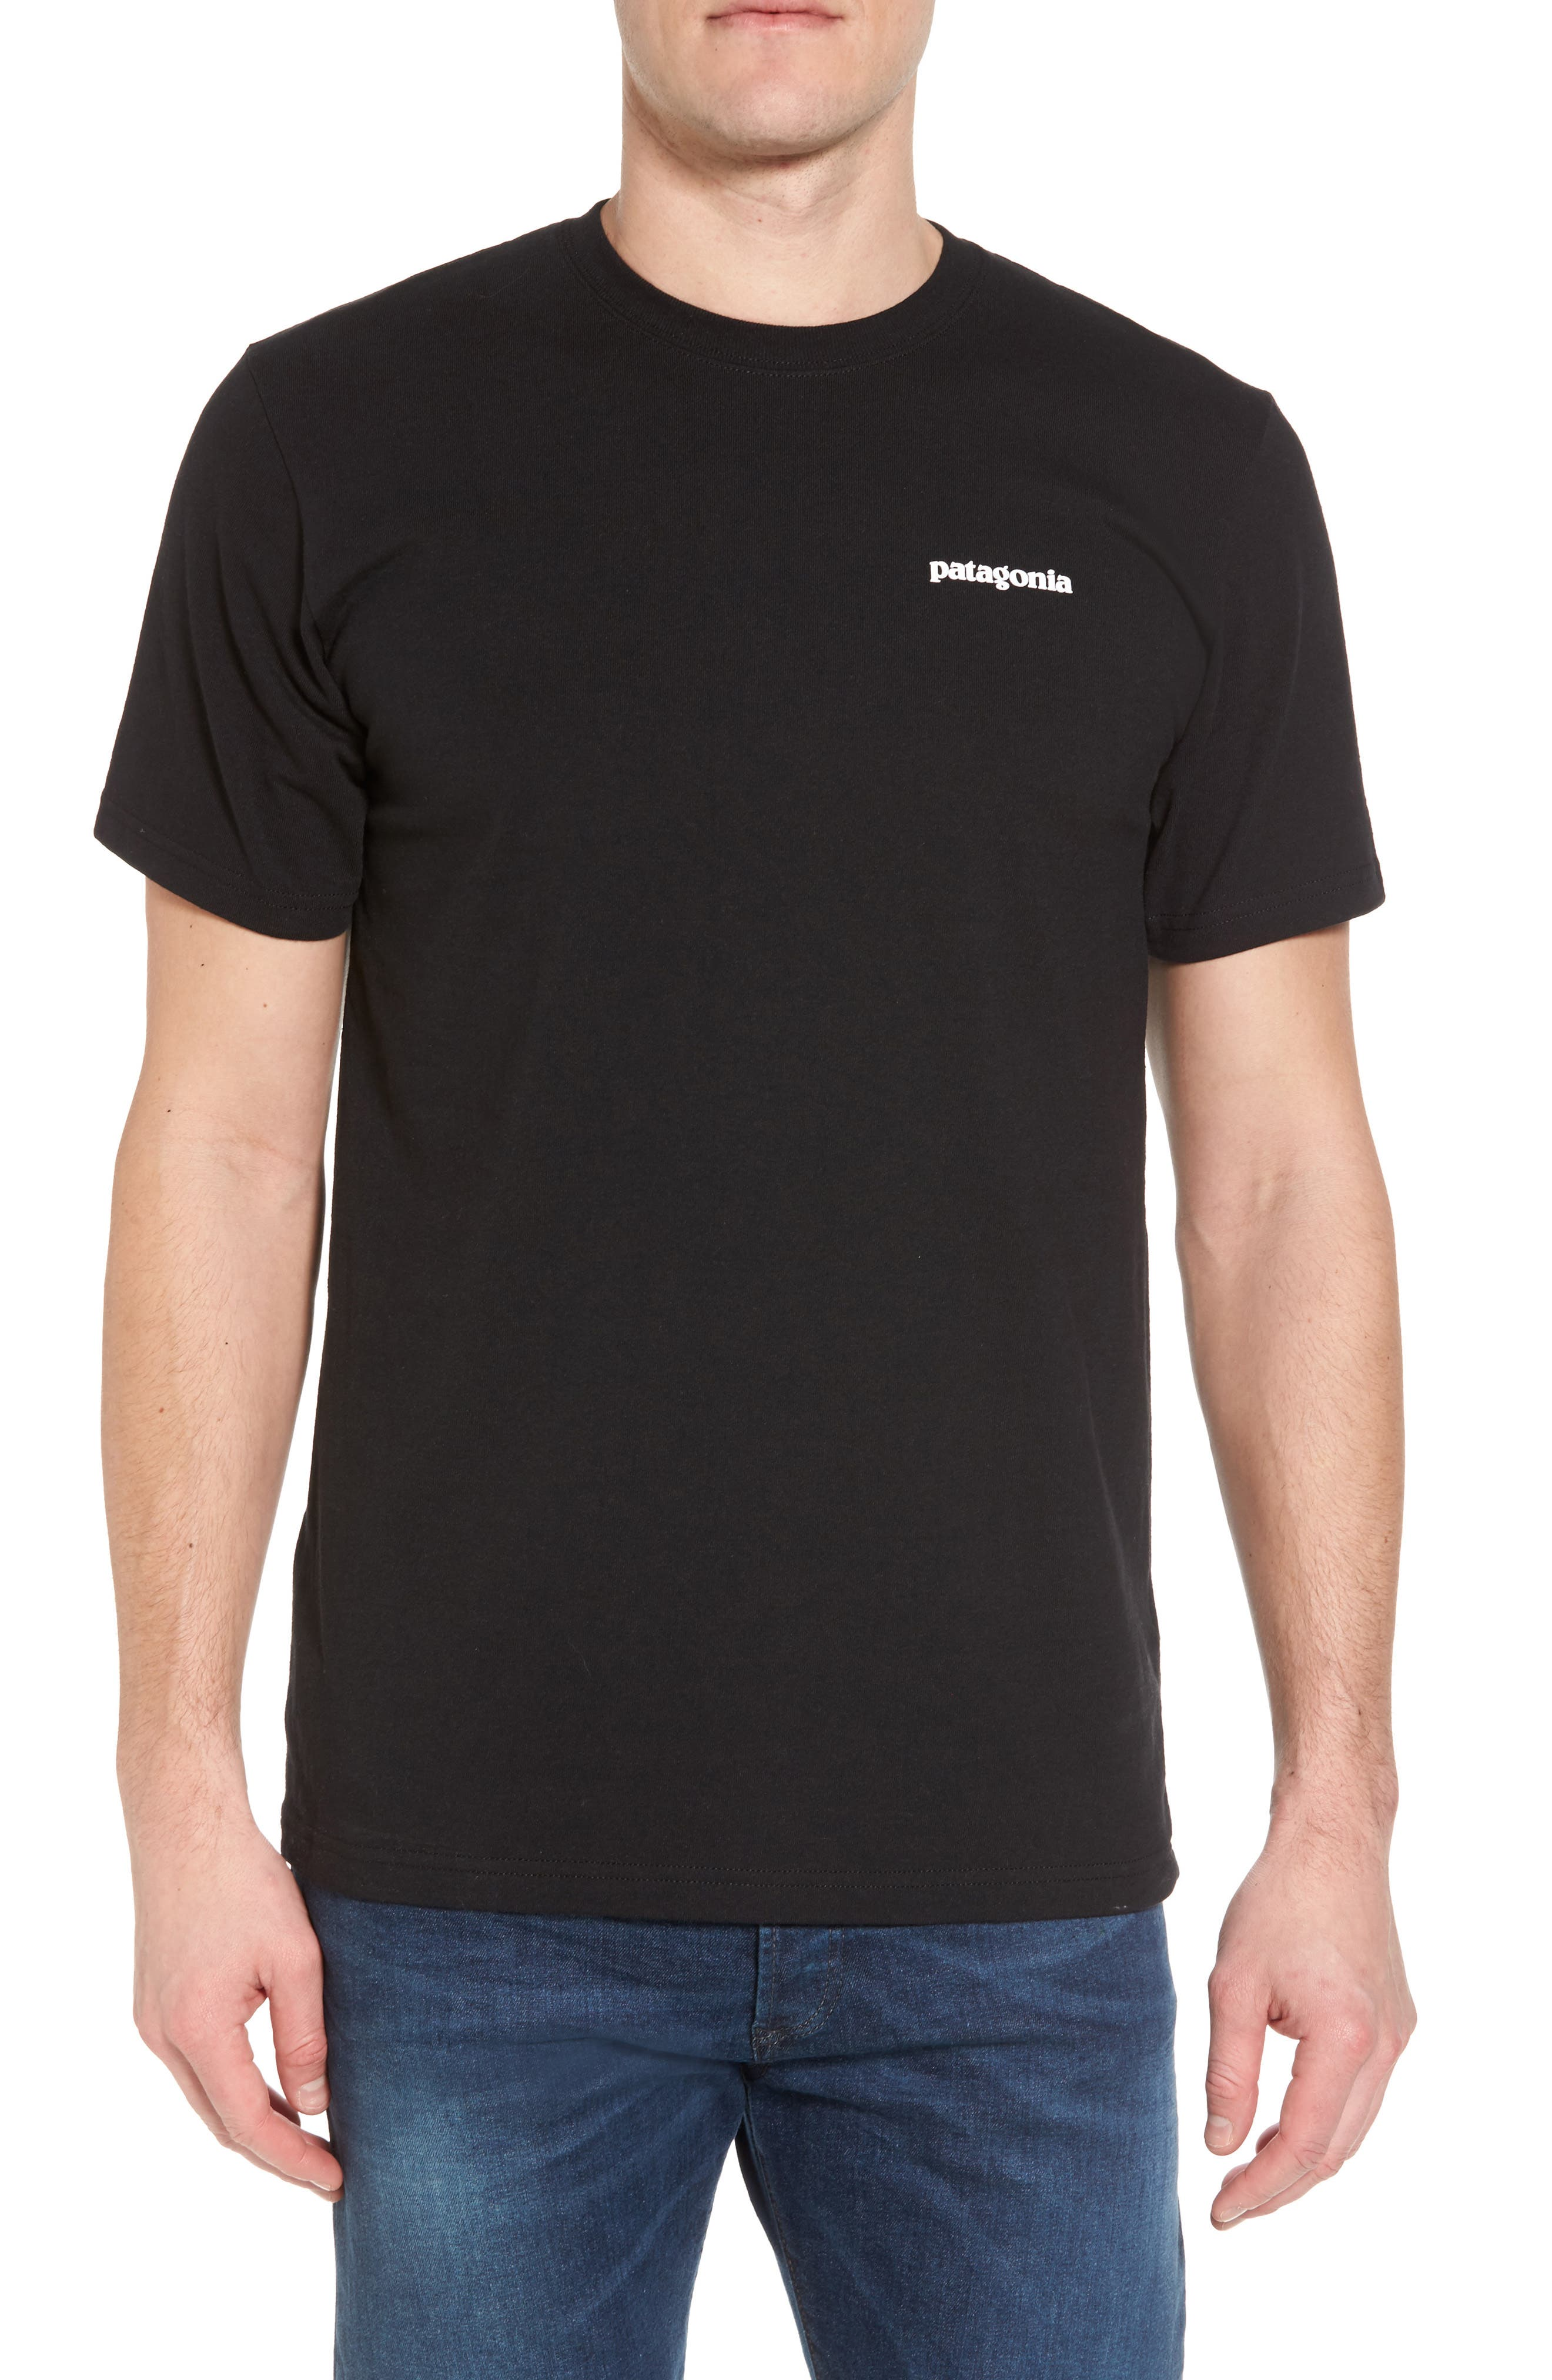 Responsibili-Tee T-Shirt,                             Main thumbnail 1, color,                             BLACK